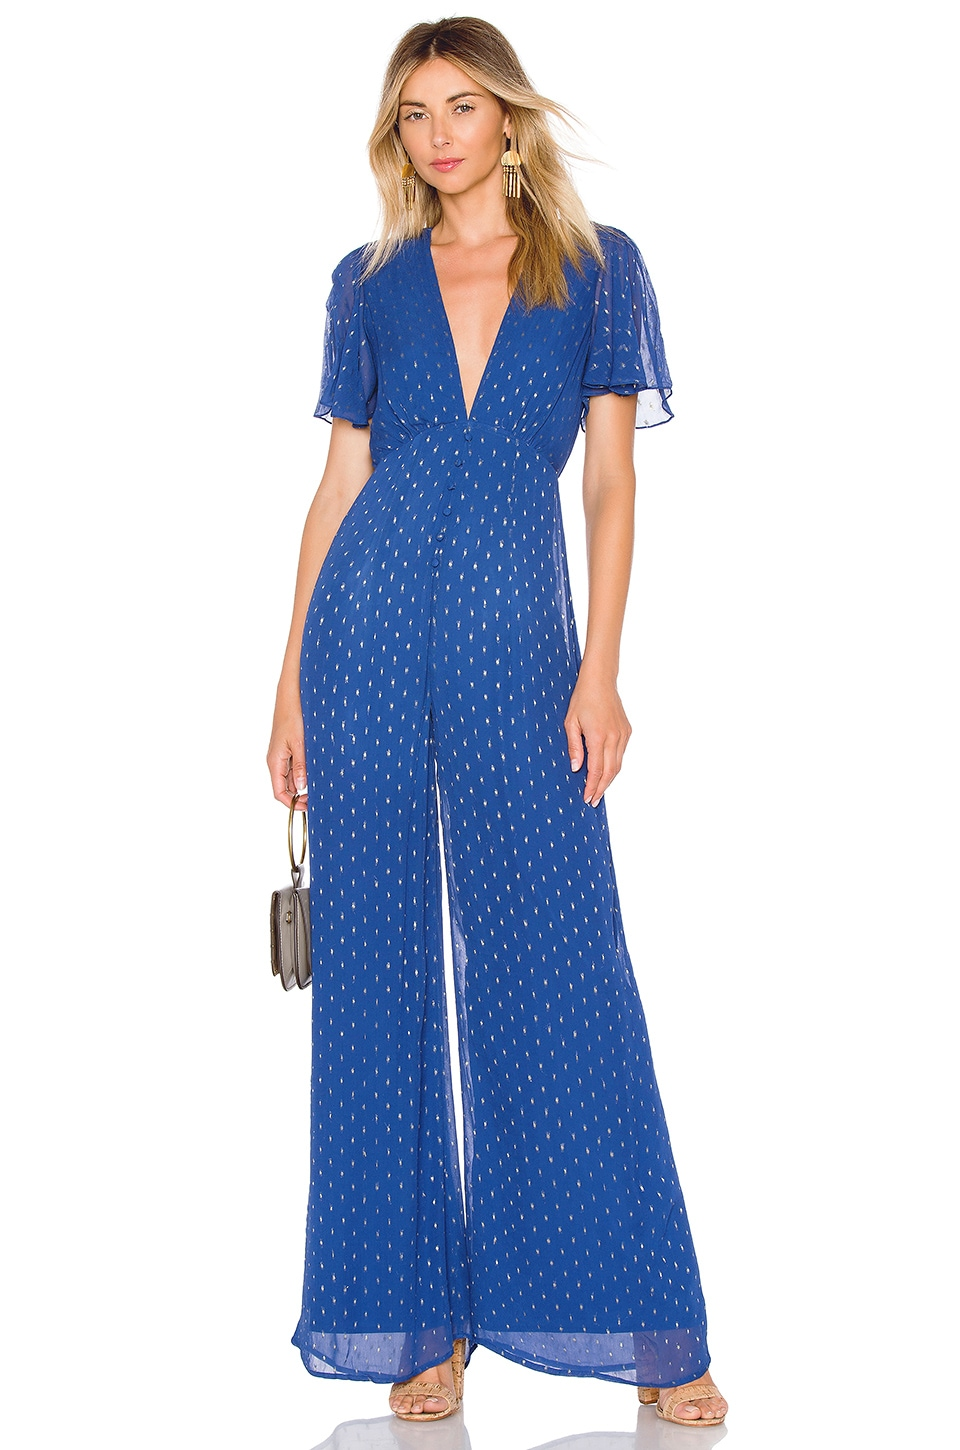 House of Harlow 1960 x REVOLVE Marcel Jumpsuit in Navy & Gold Dot